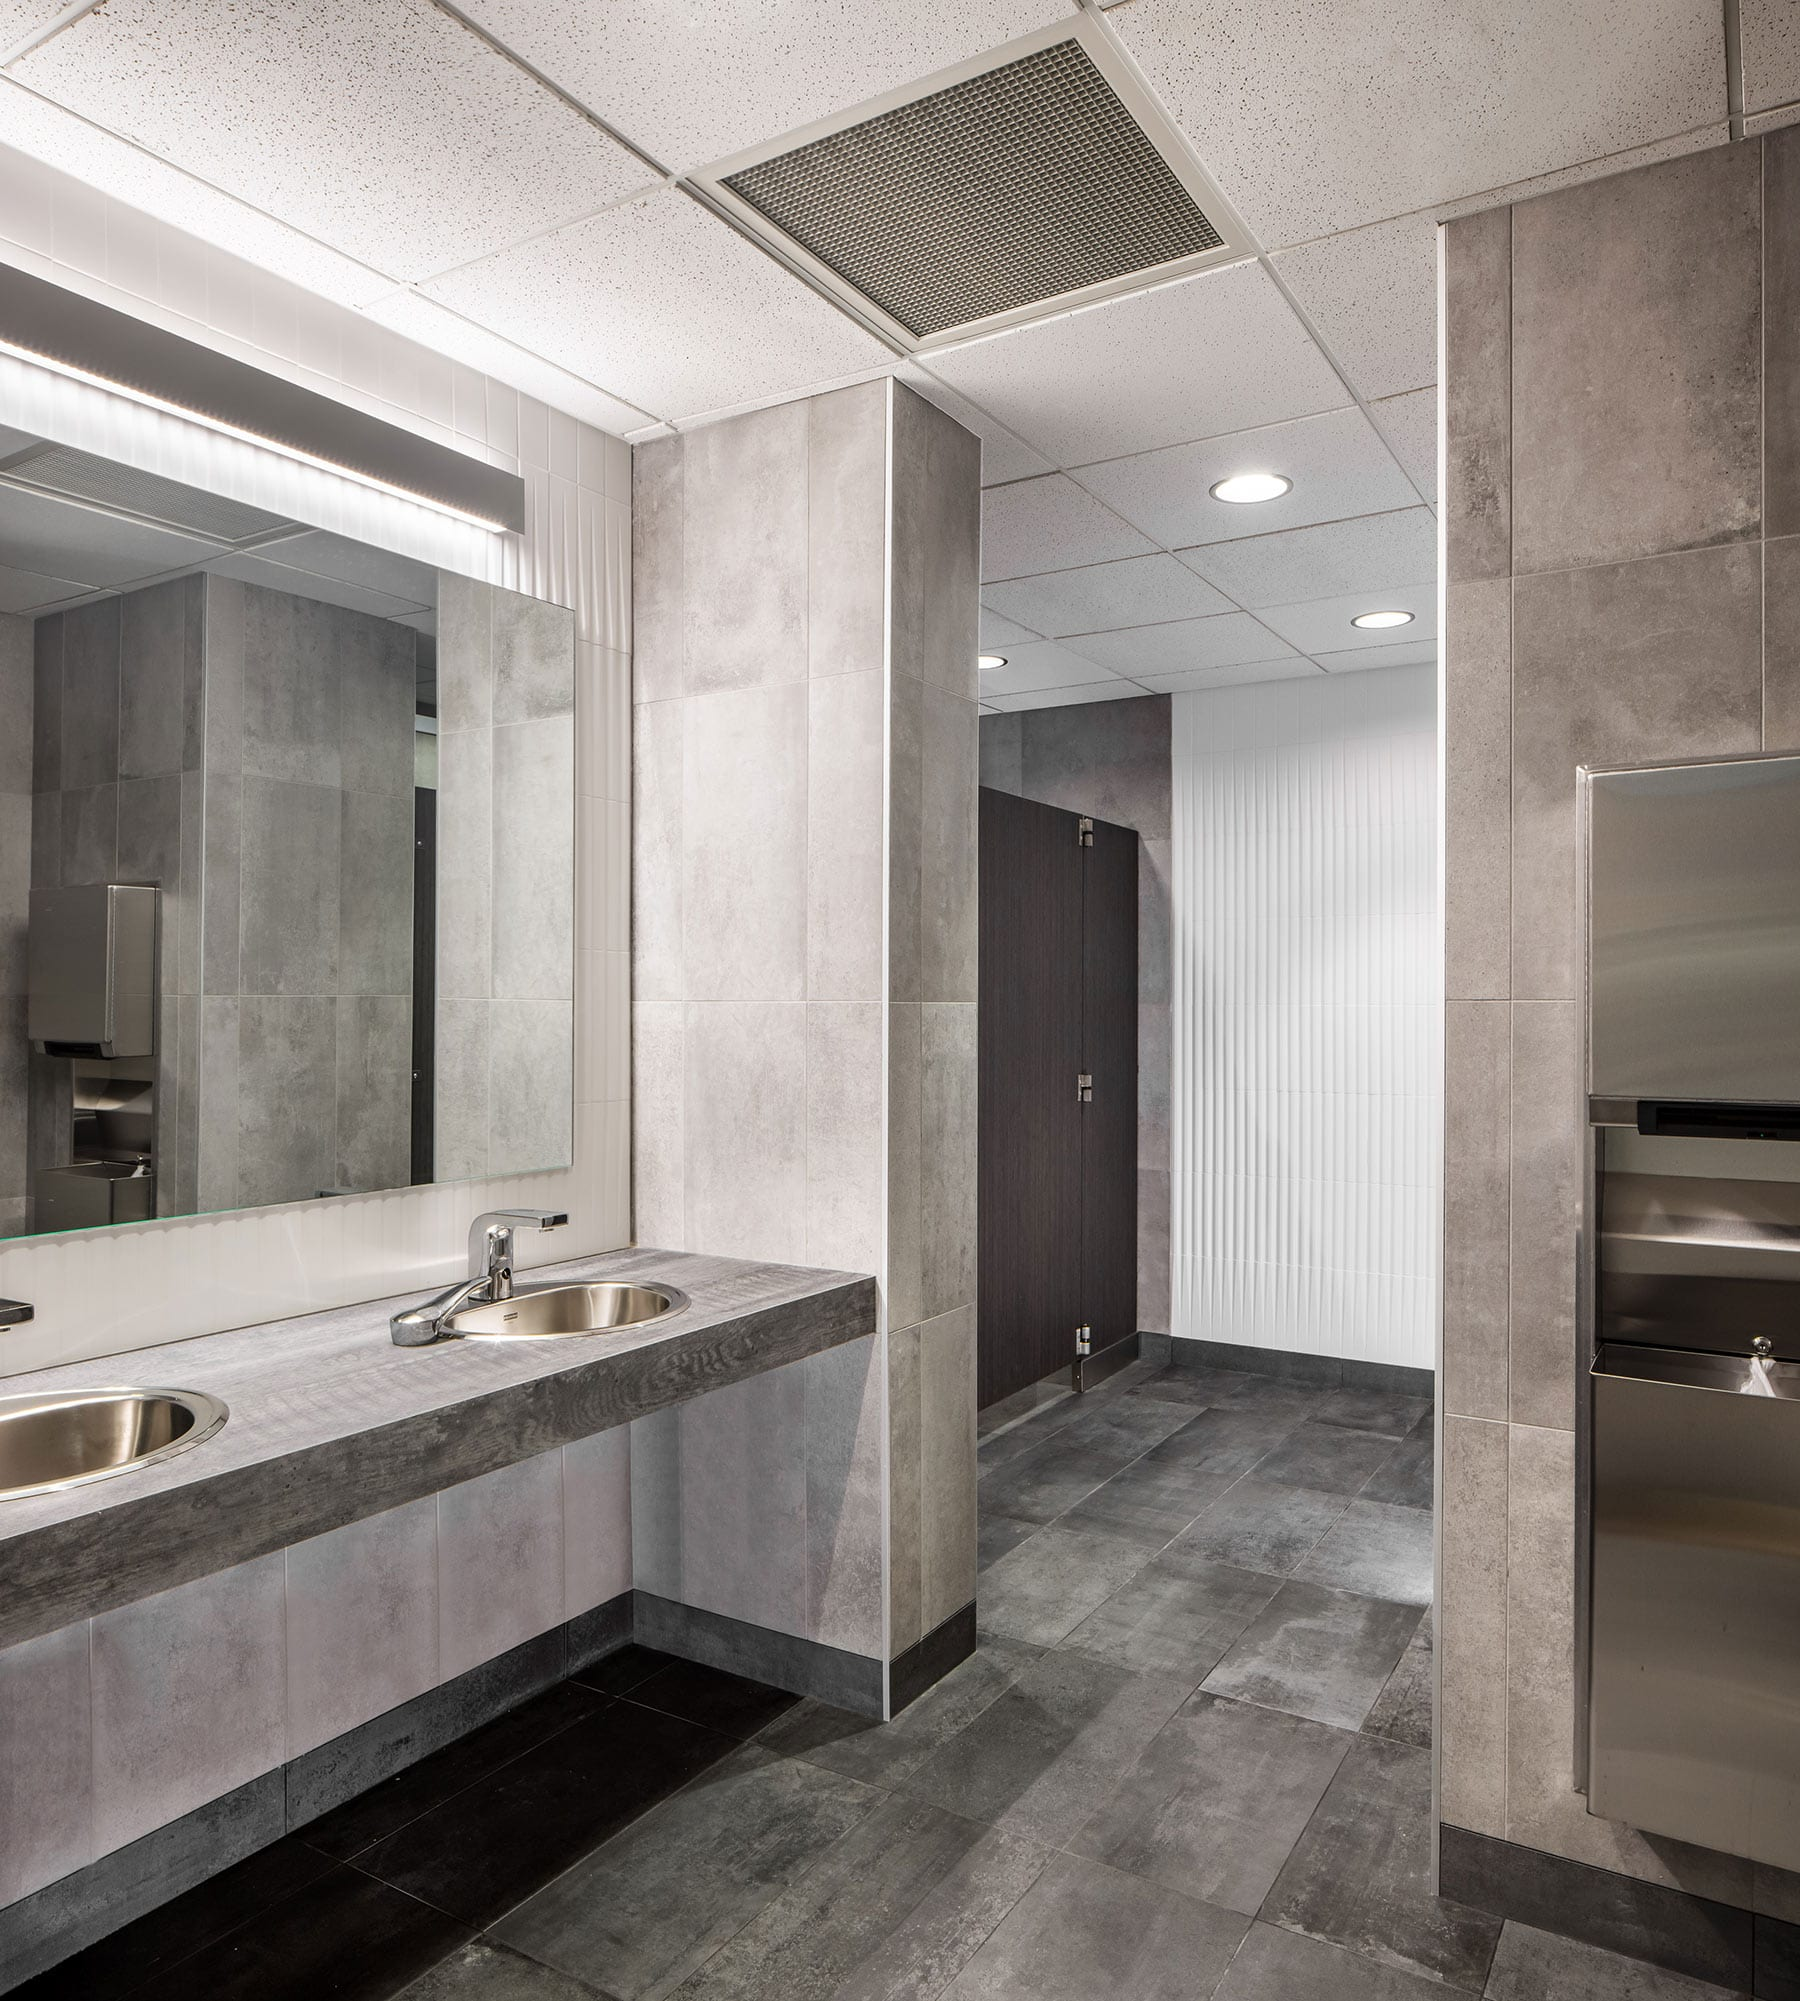 Commercial office building restroom refresh with premium upgrades